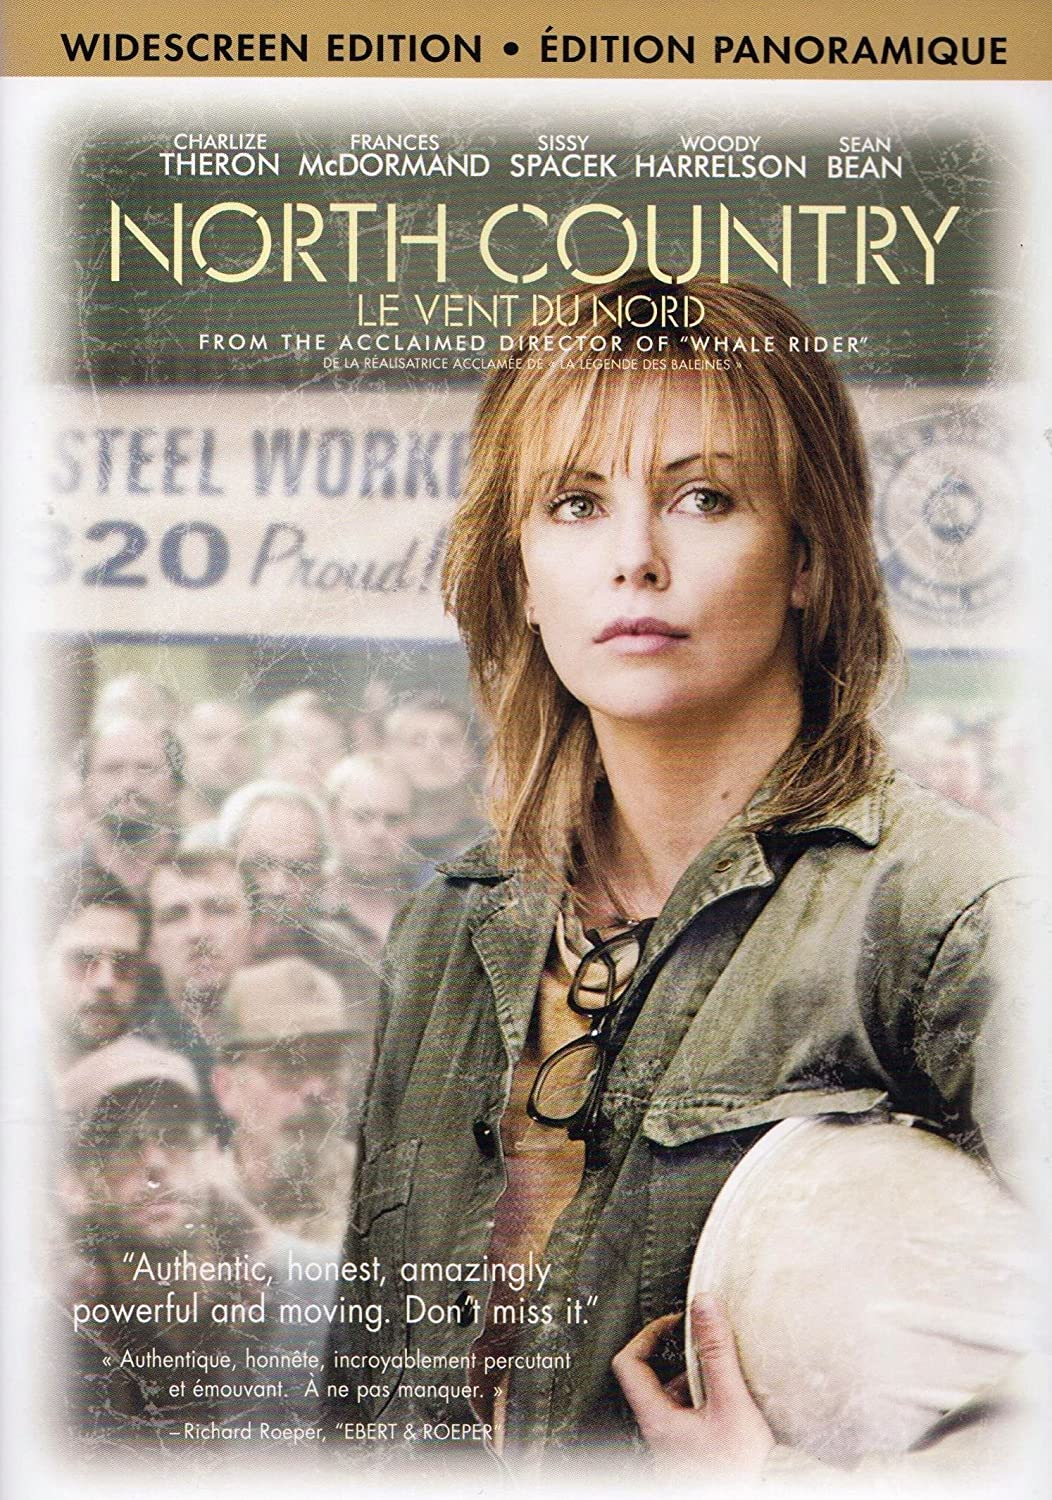 North Country [DVD]: Amazon.es: Charlize Theron, Elle ...